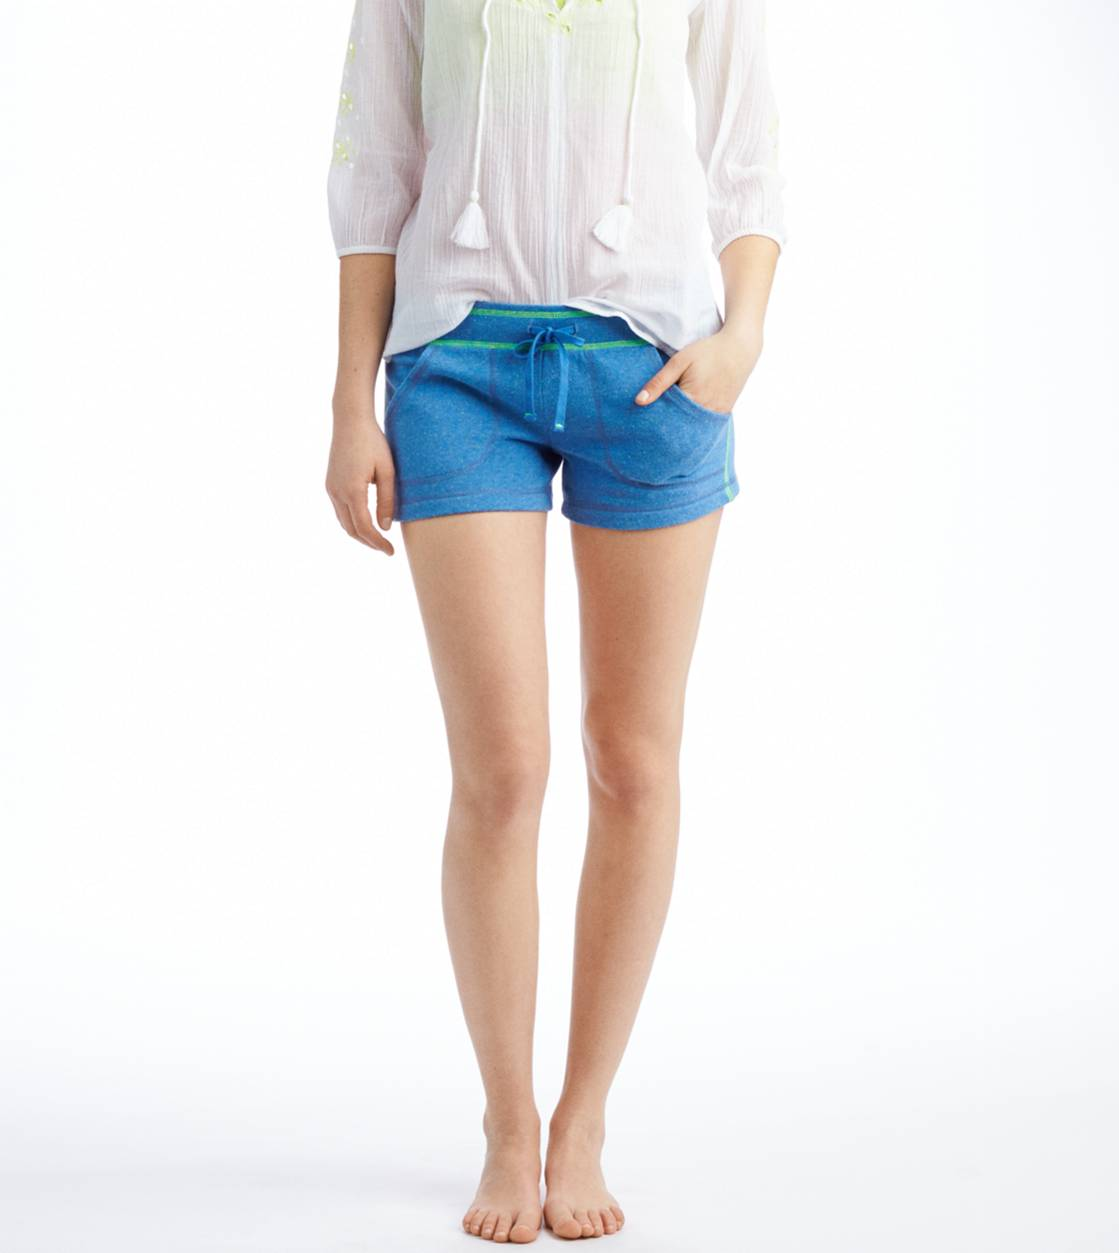 Rome Blue Aerie Sweatpant Short